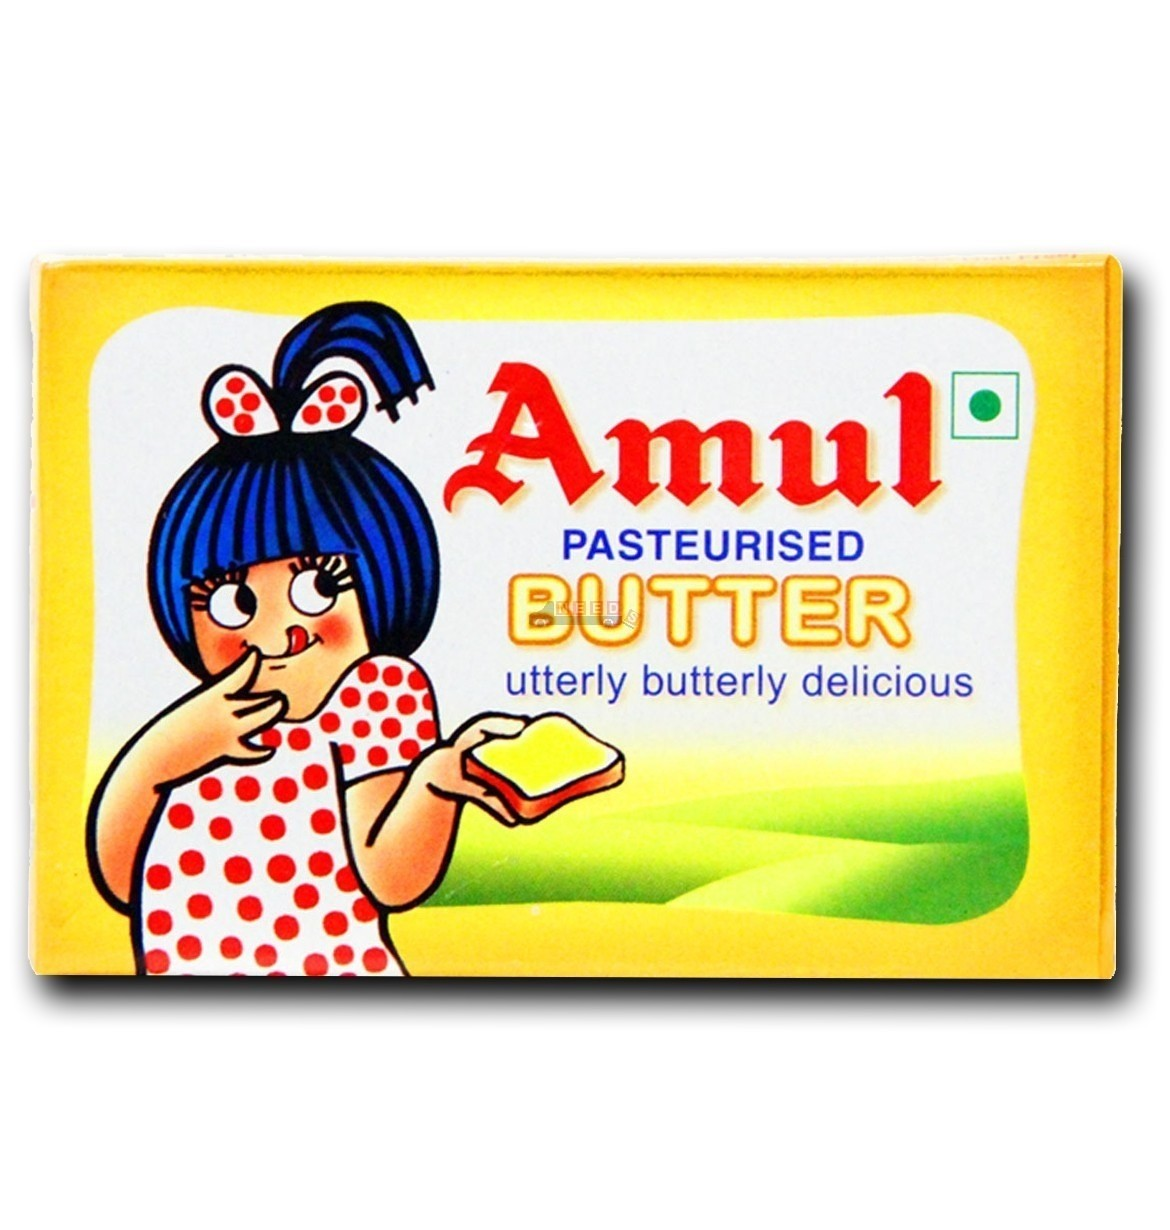 amul producing ads with a twist for decades media india group african american clip art rejoice african american clipart for the armor of god